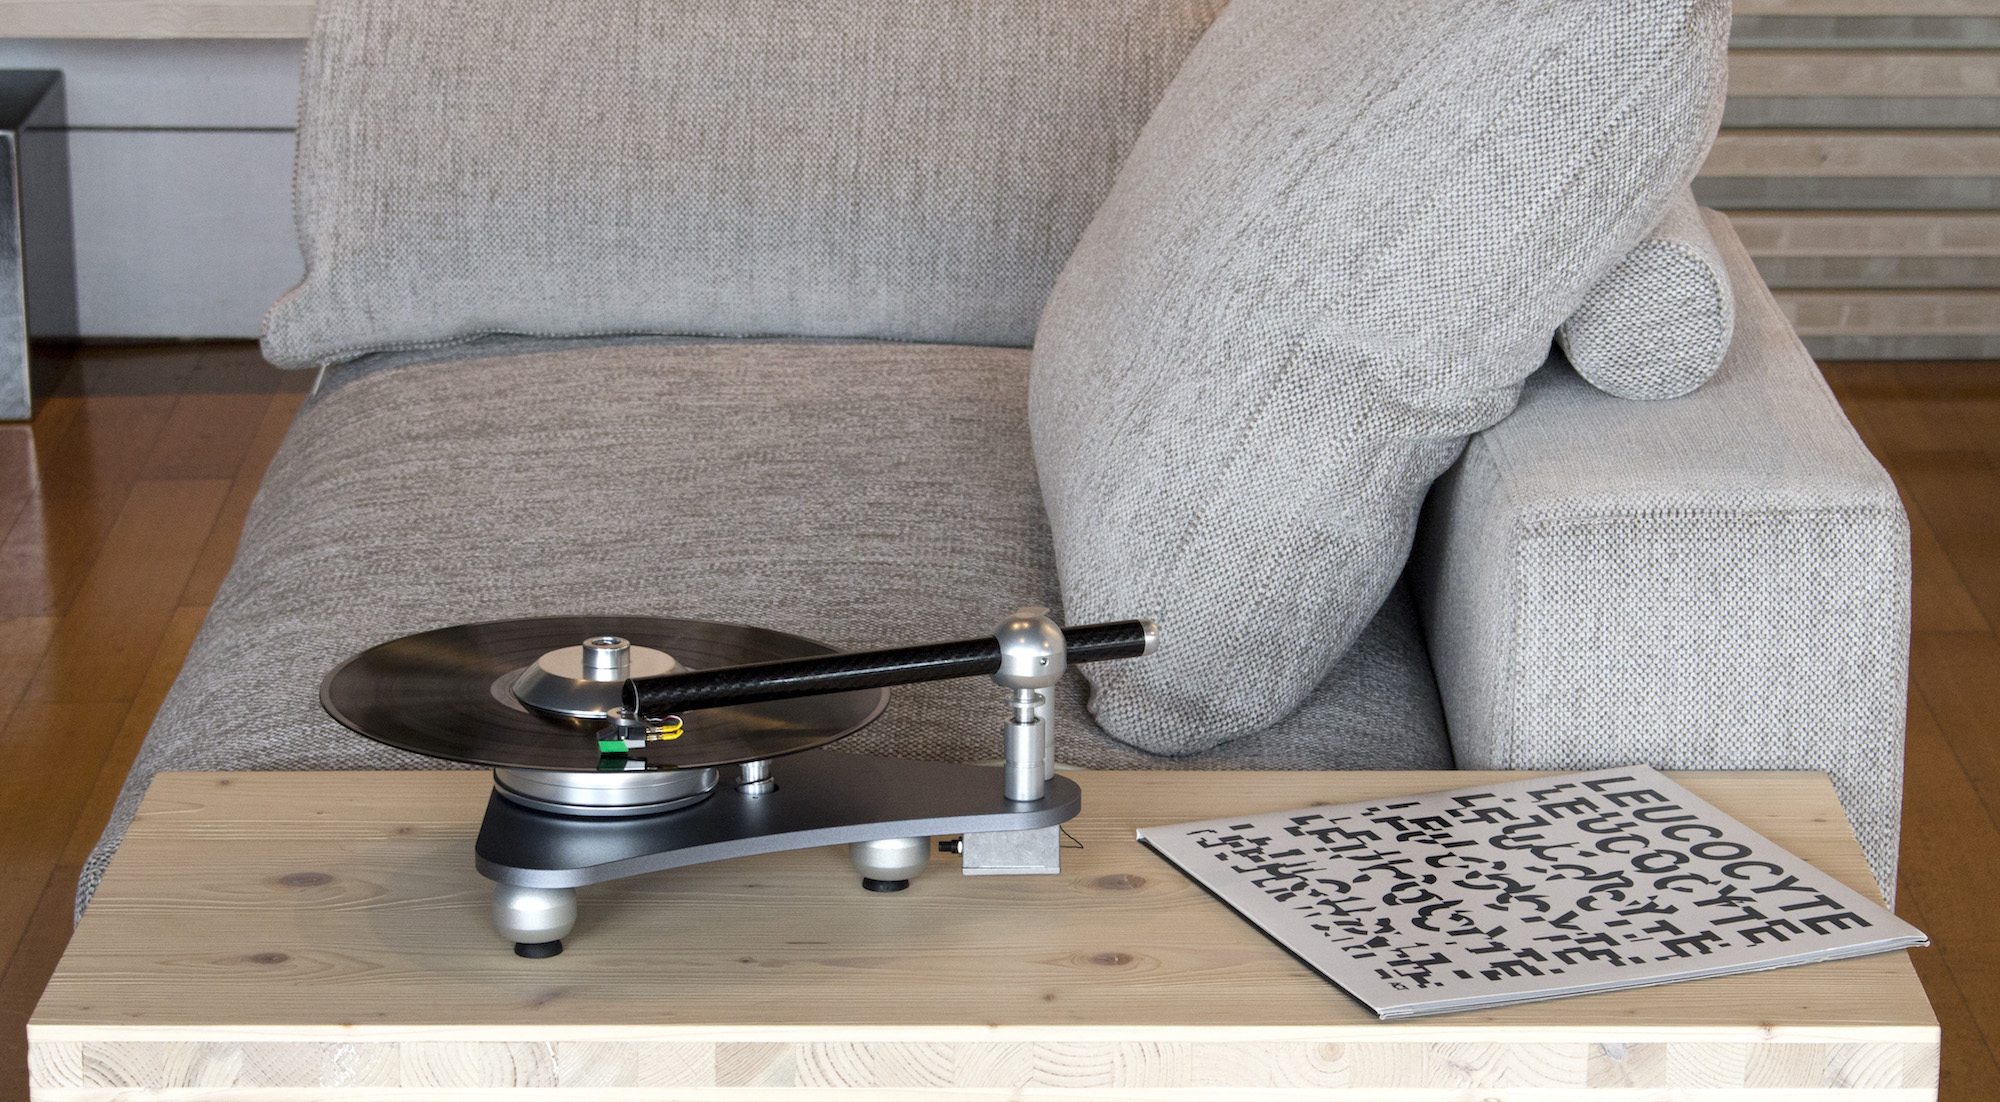 Atmo Sfera Platterless Turntable: designed with physics in mind